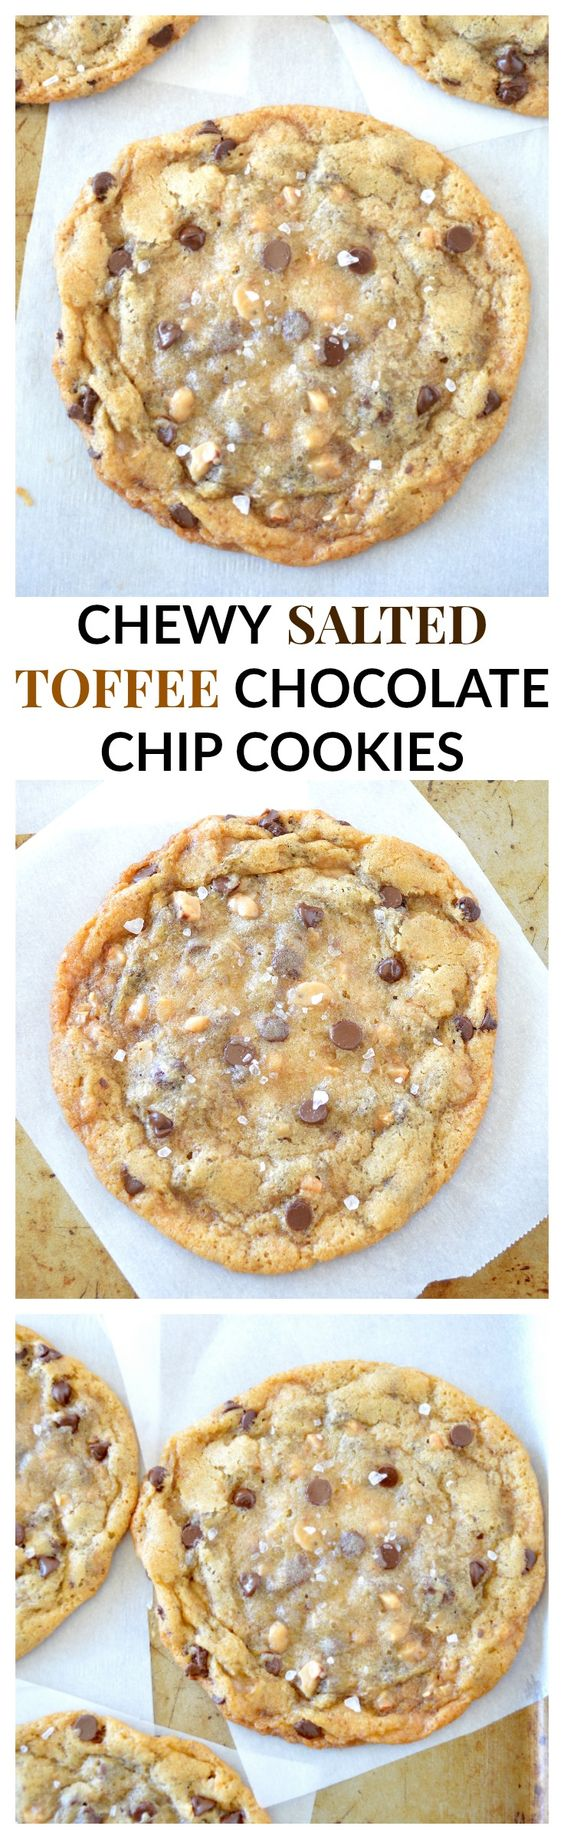 toffee chocolate chip cookies chip cookies chocolate chips cookies ...